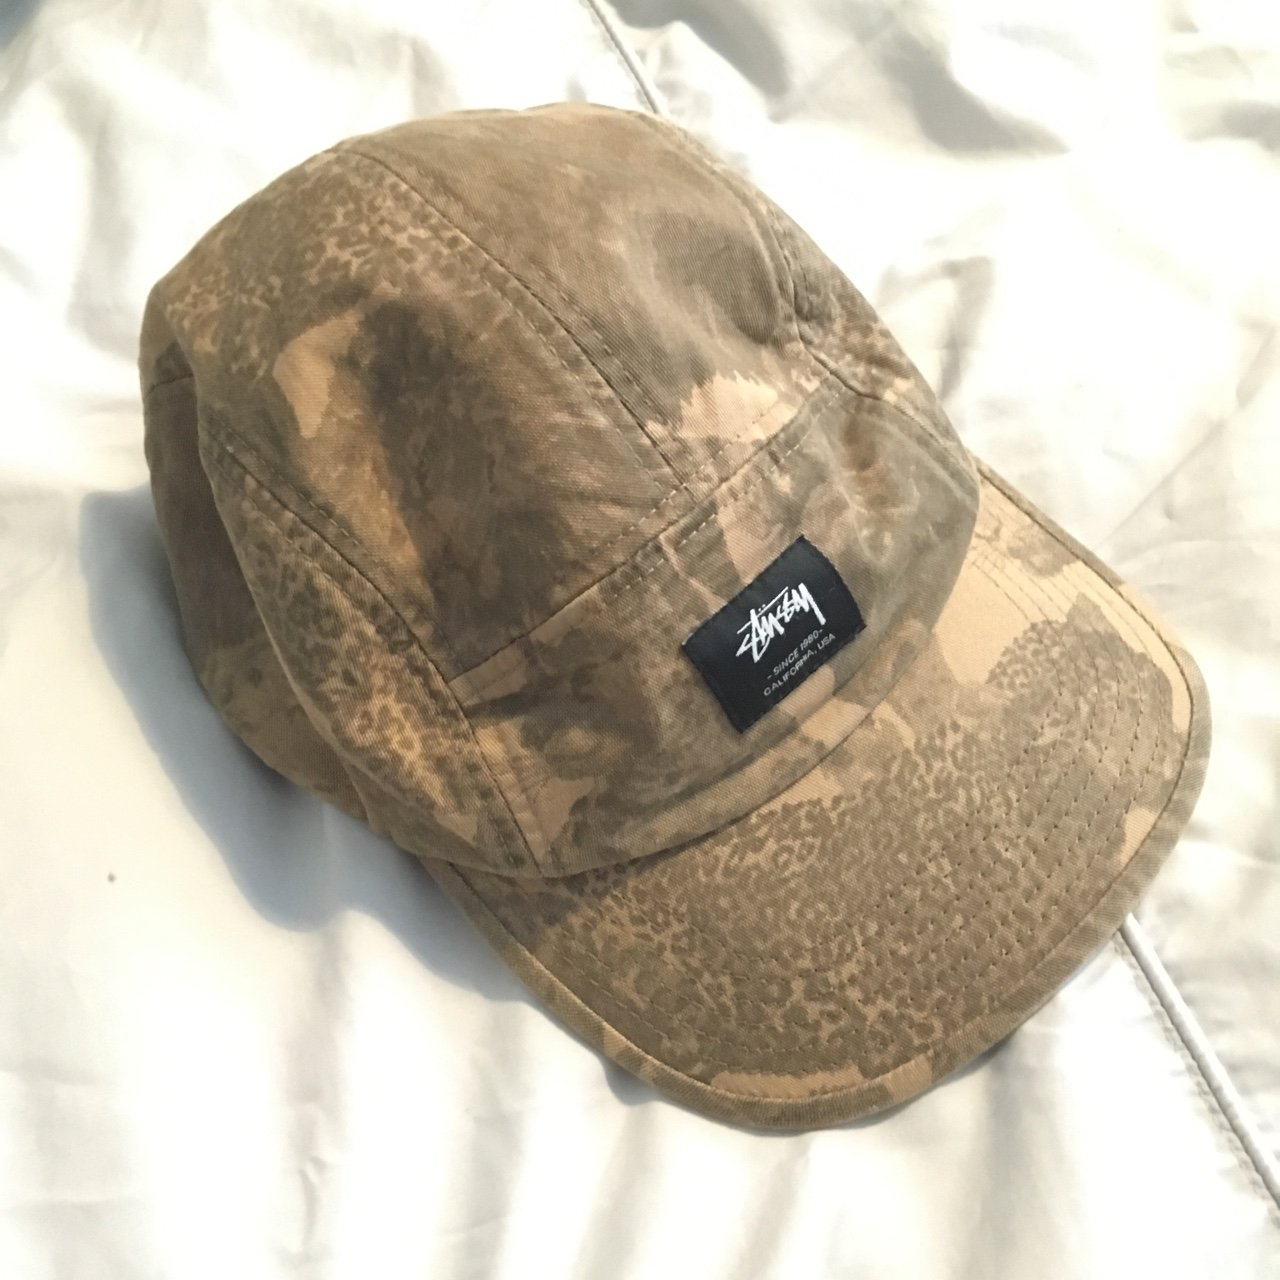 Stüssy 5 panel cap in beige brown  stussy  cap  5panel   hat - Depop bb1783254ca